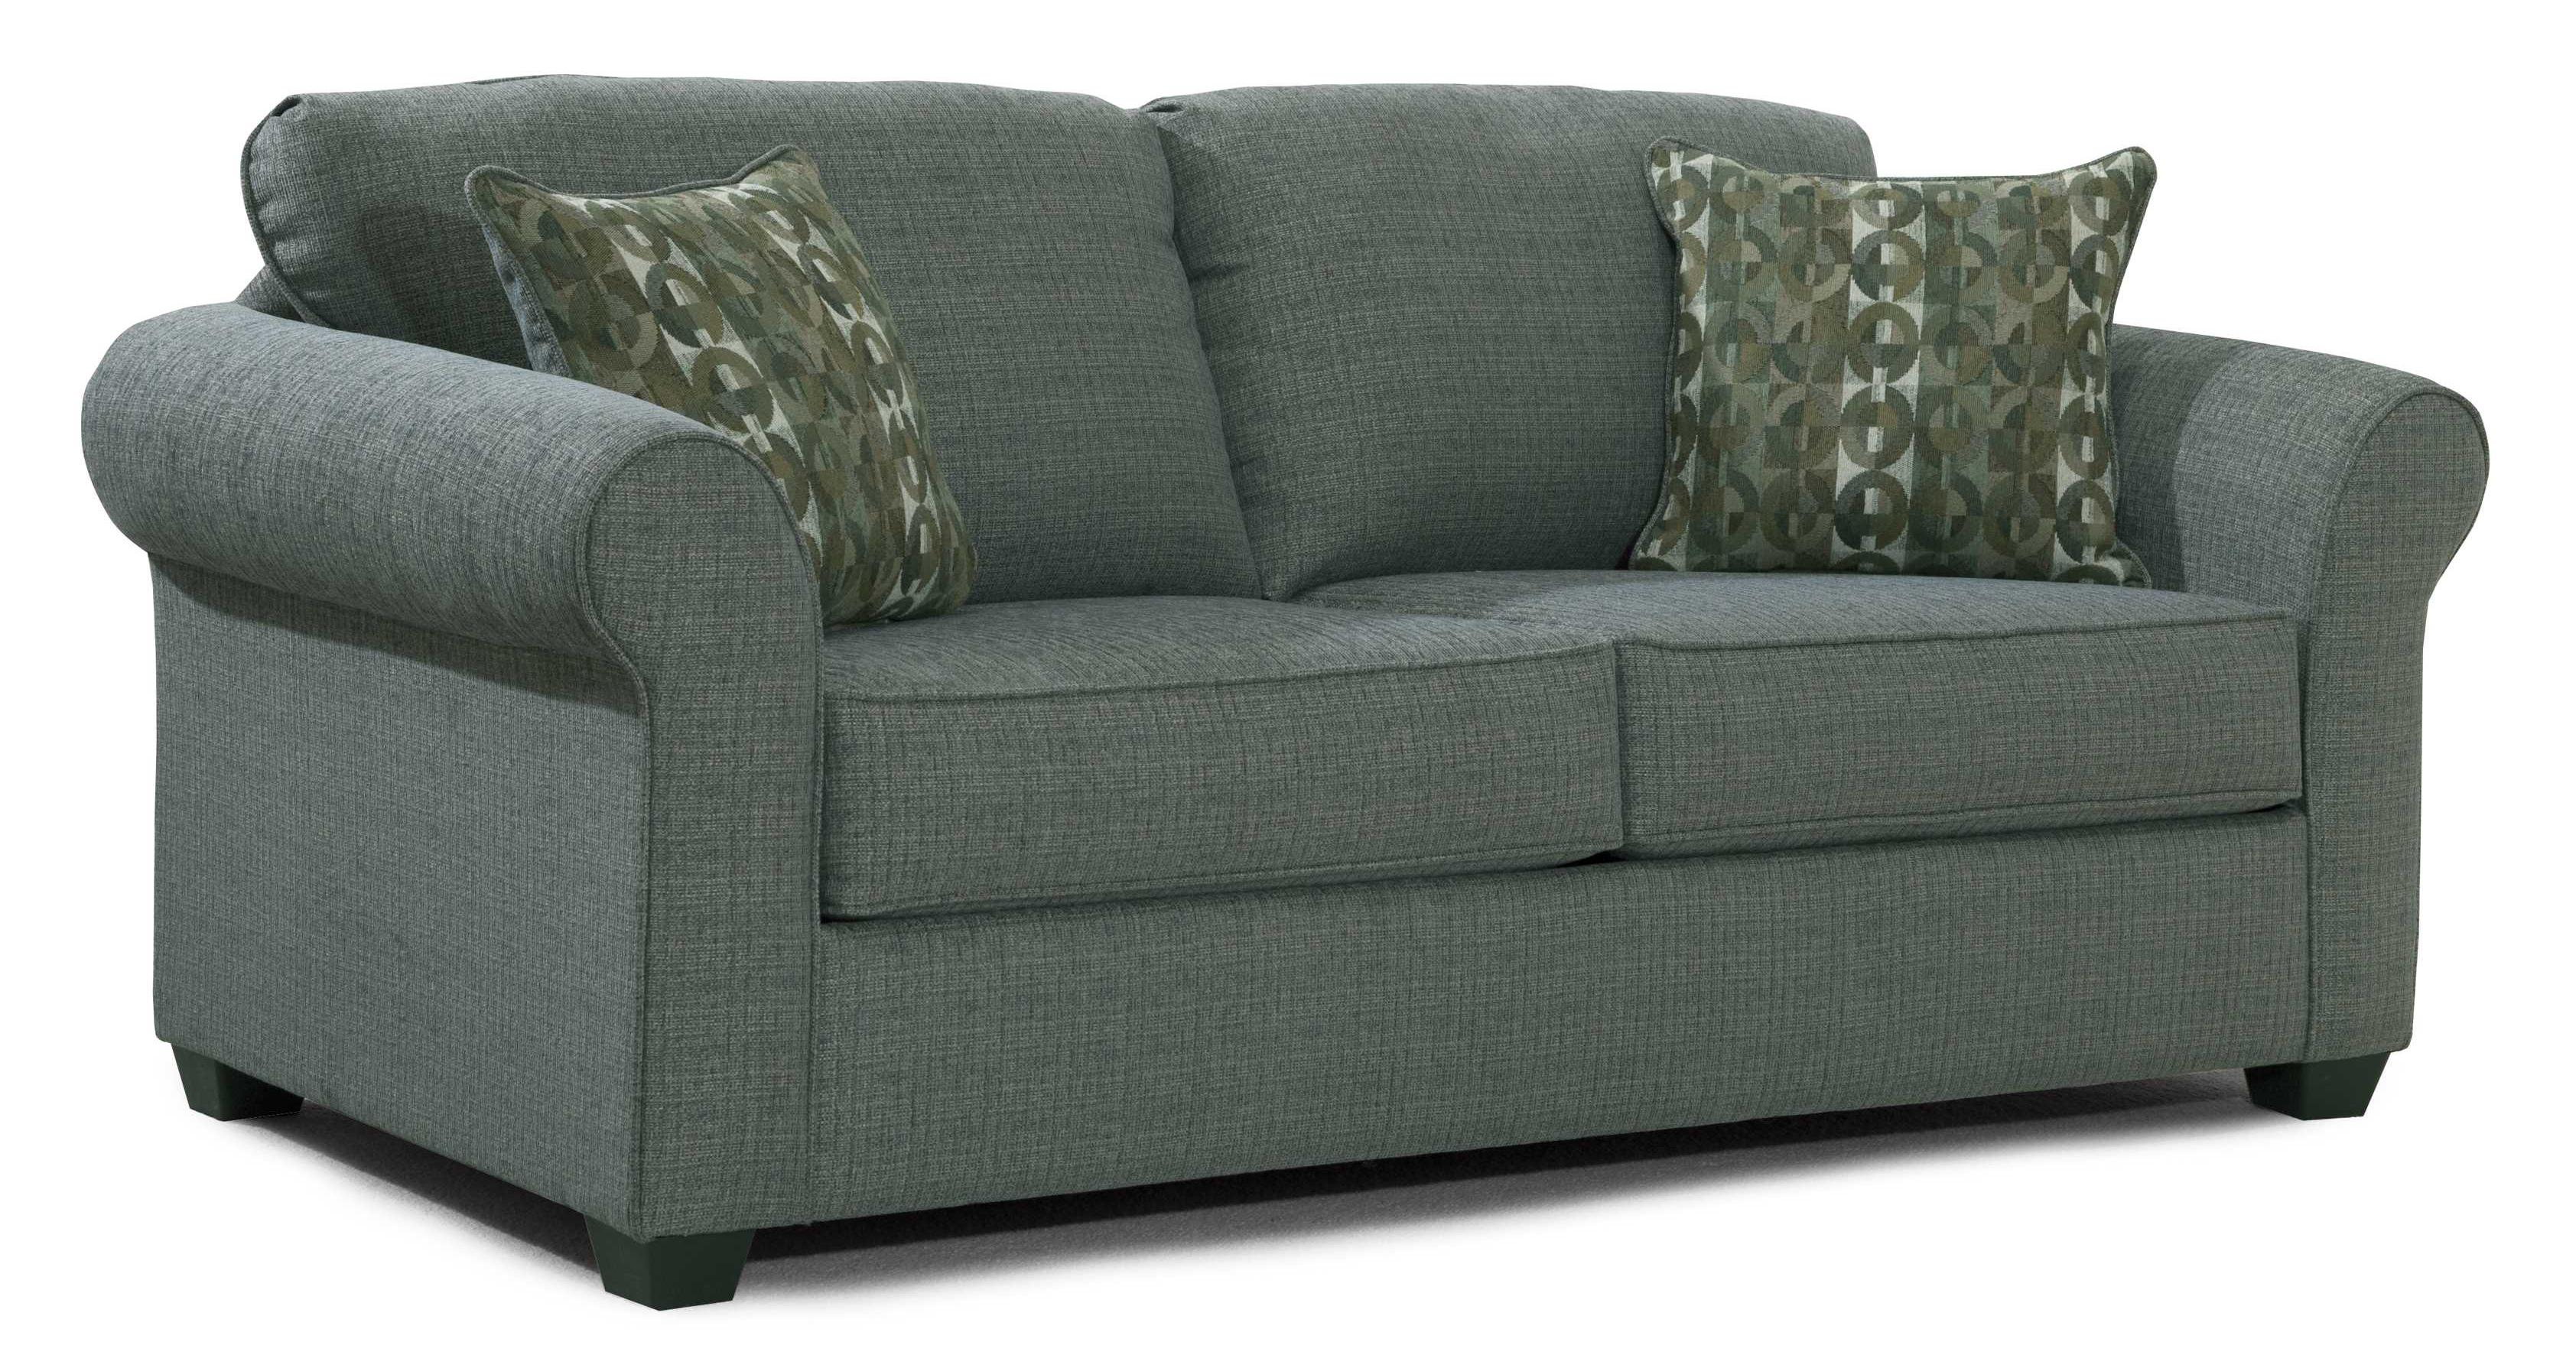 serta sofa sleeper full size microfiber reclining and loveseat sets upholstery by hughes furniture 1750 casual twin